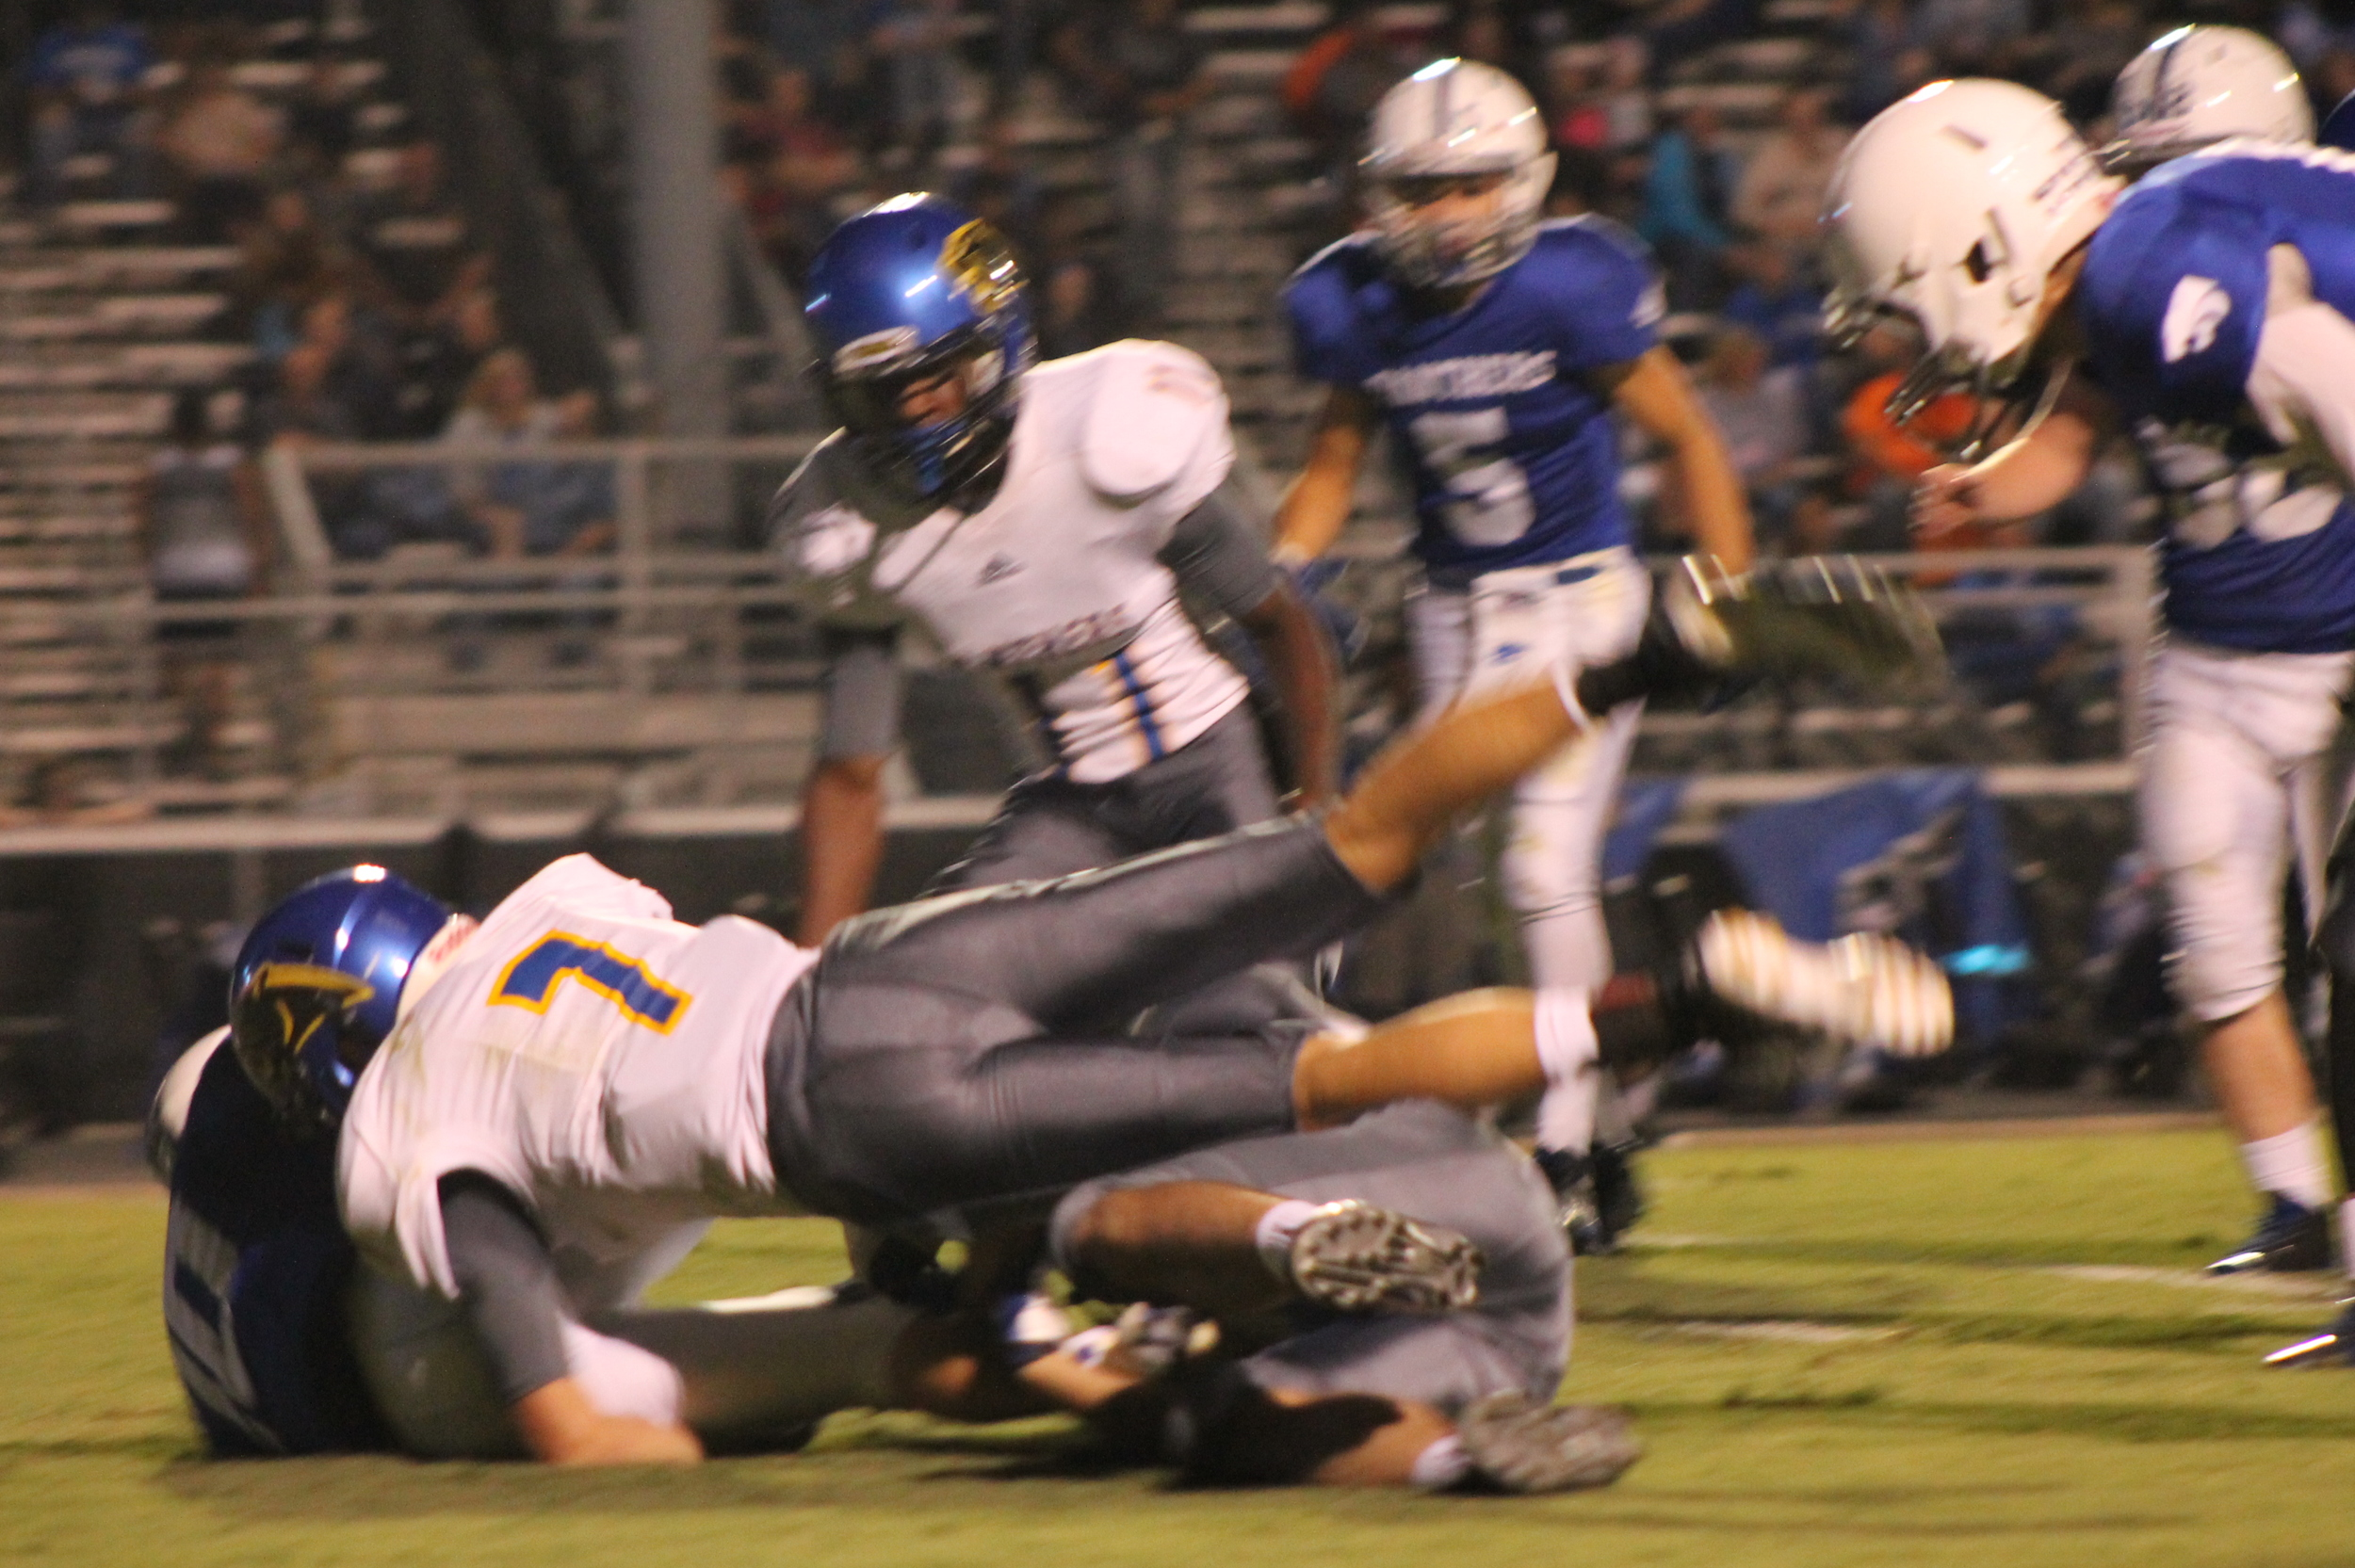 (Photo by Maddy Routon) Trey Scudder (7) making a tackle Friday night as Stephon Bass (11) watches.